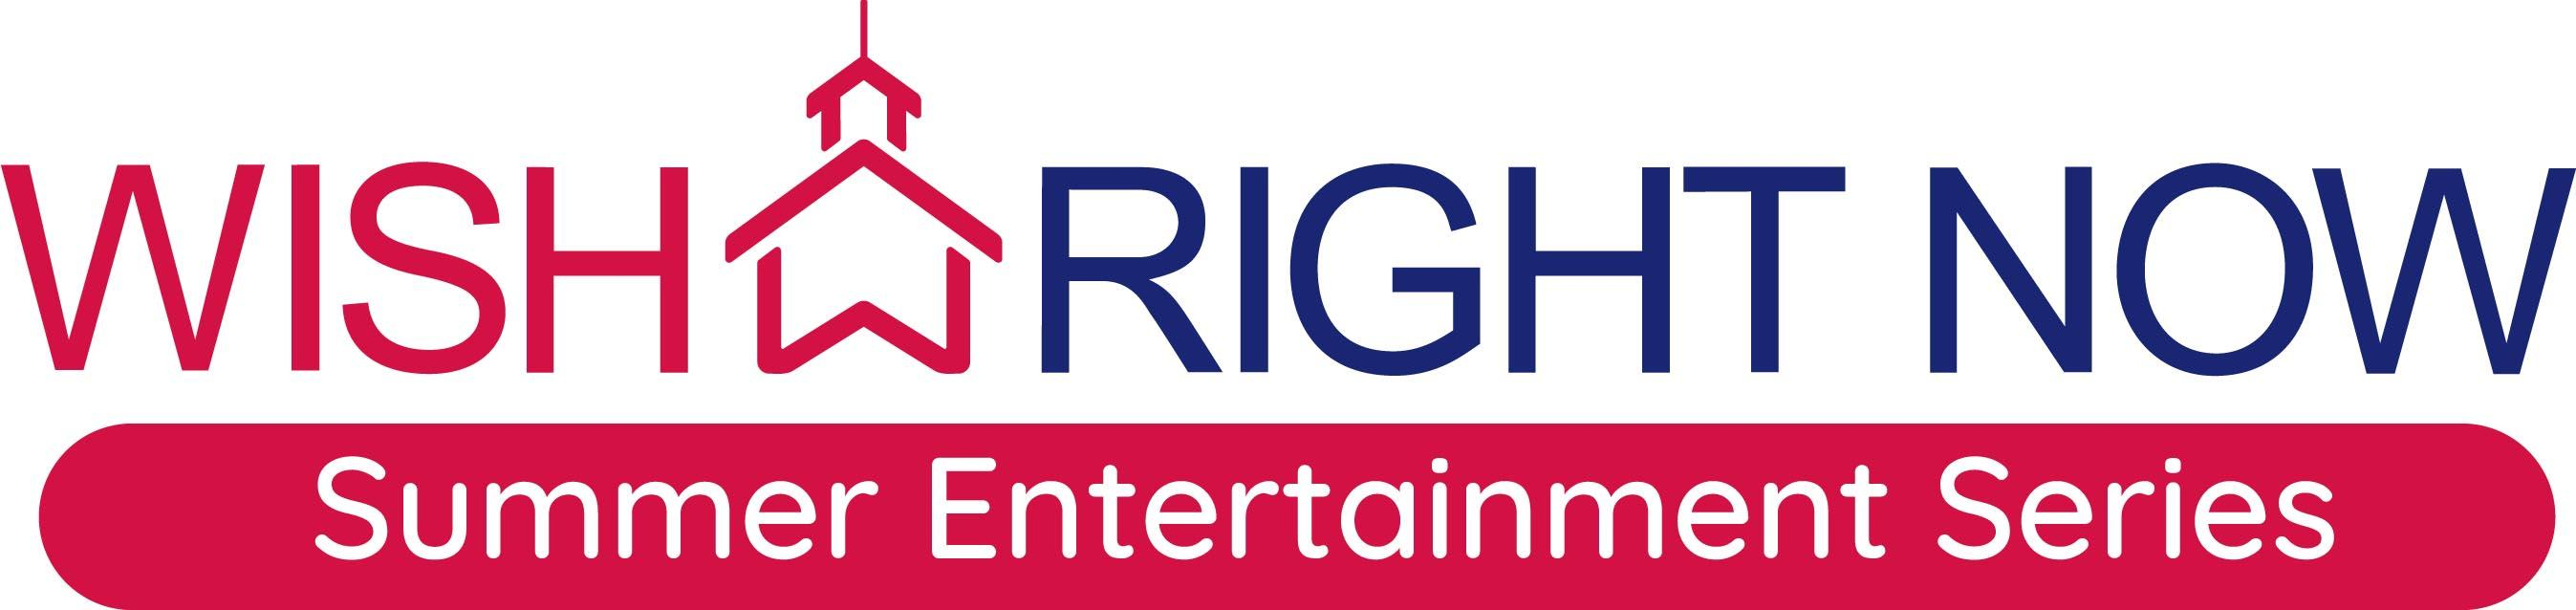 WISH right now logo